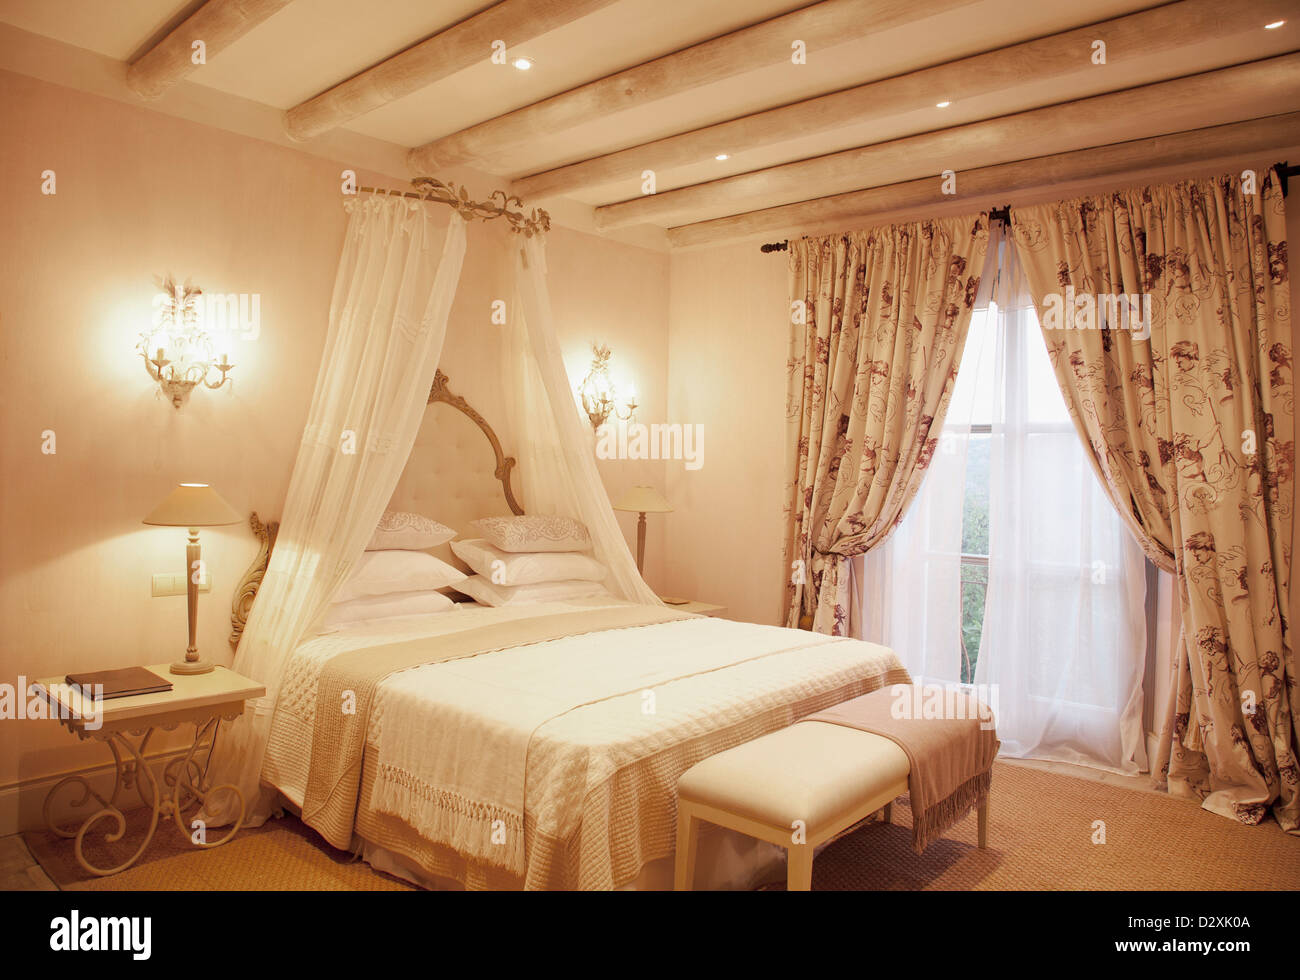 Sconces and canopy above bed in luxury bedroom & Sconces and canopy above bed in luxury bedroom Stock Photo ...